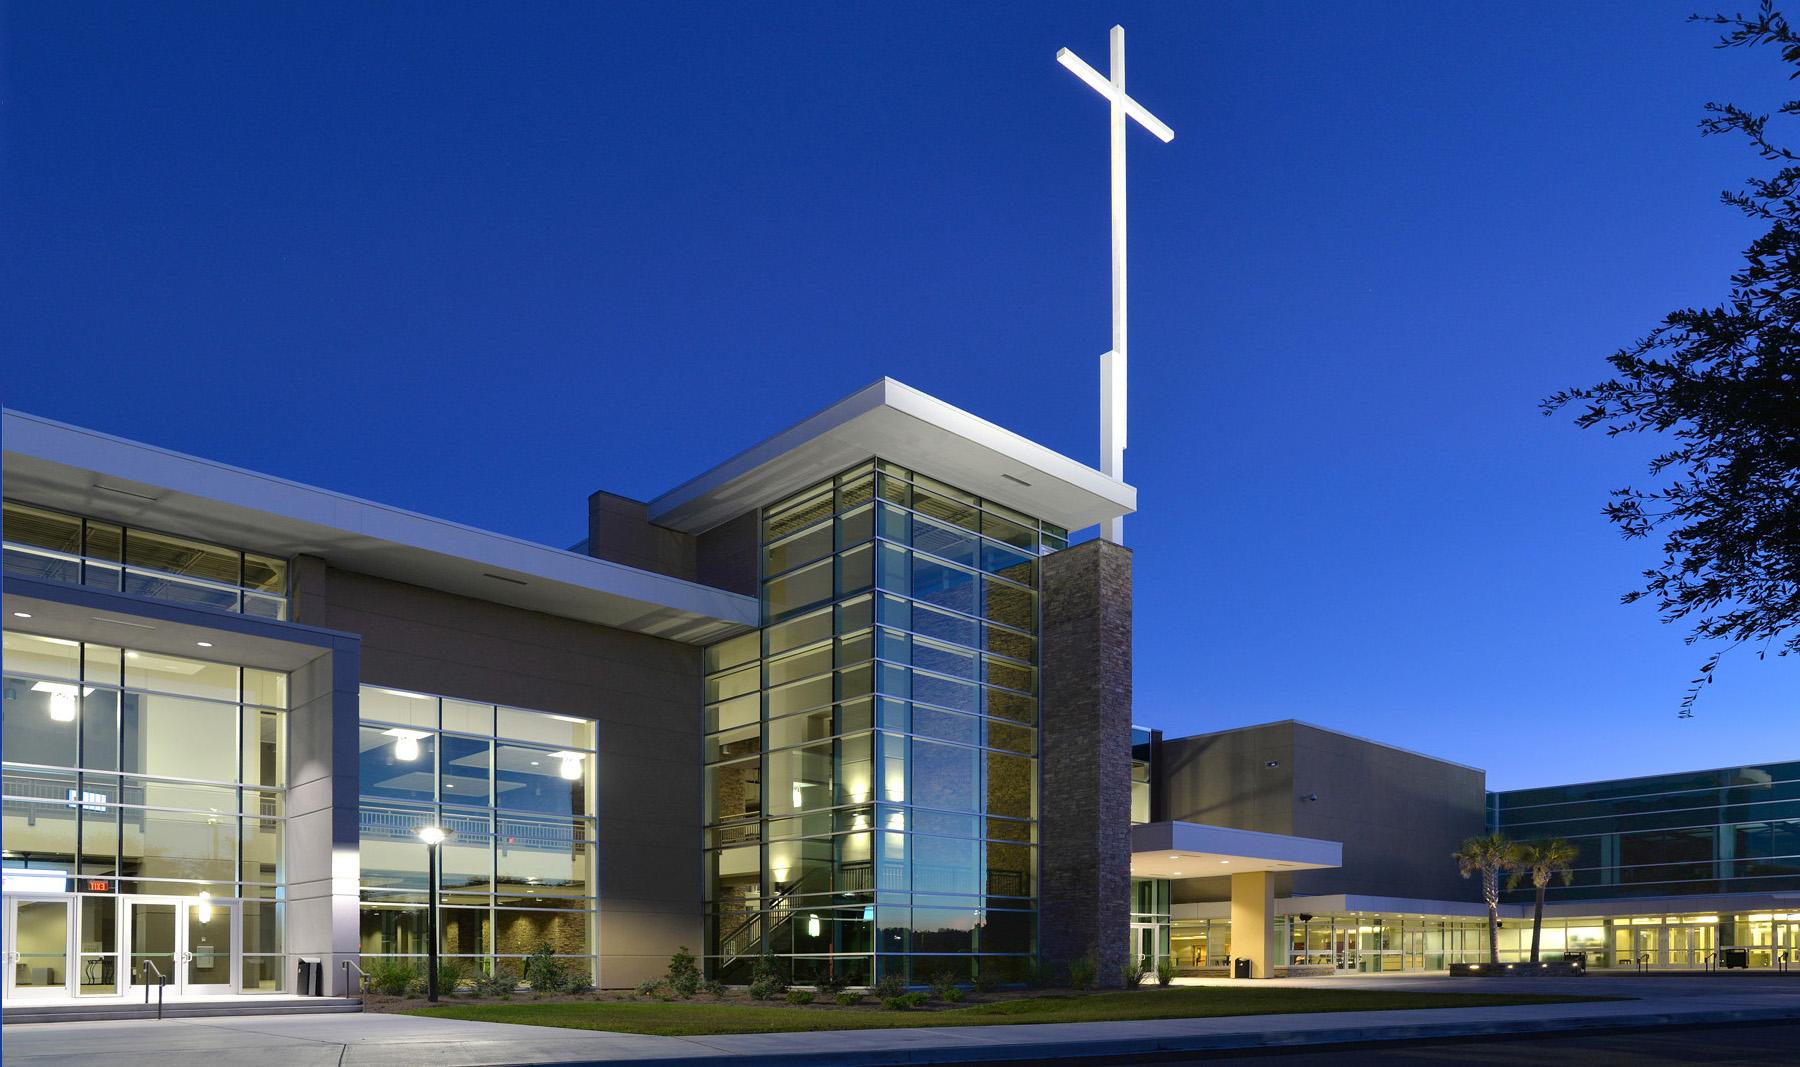 Compassion christian church van winkle construction for Church exterior design